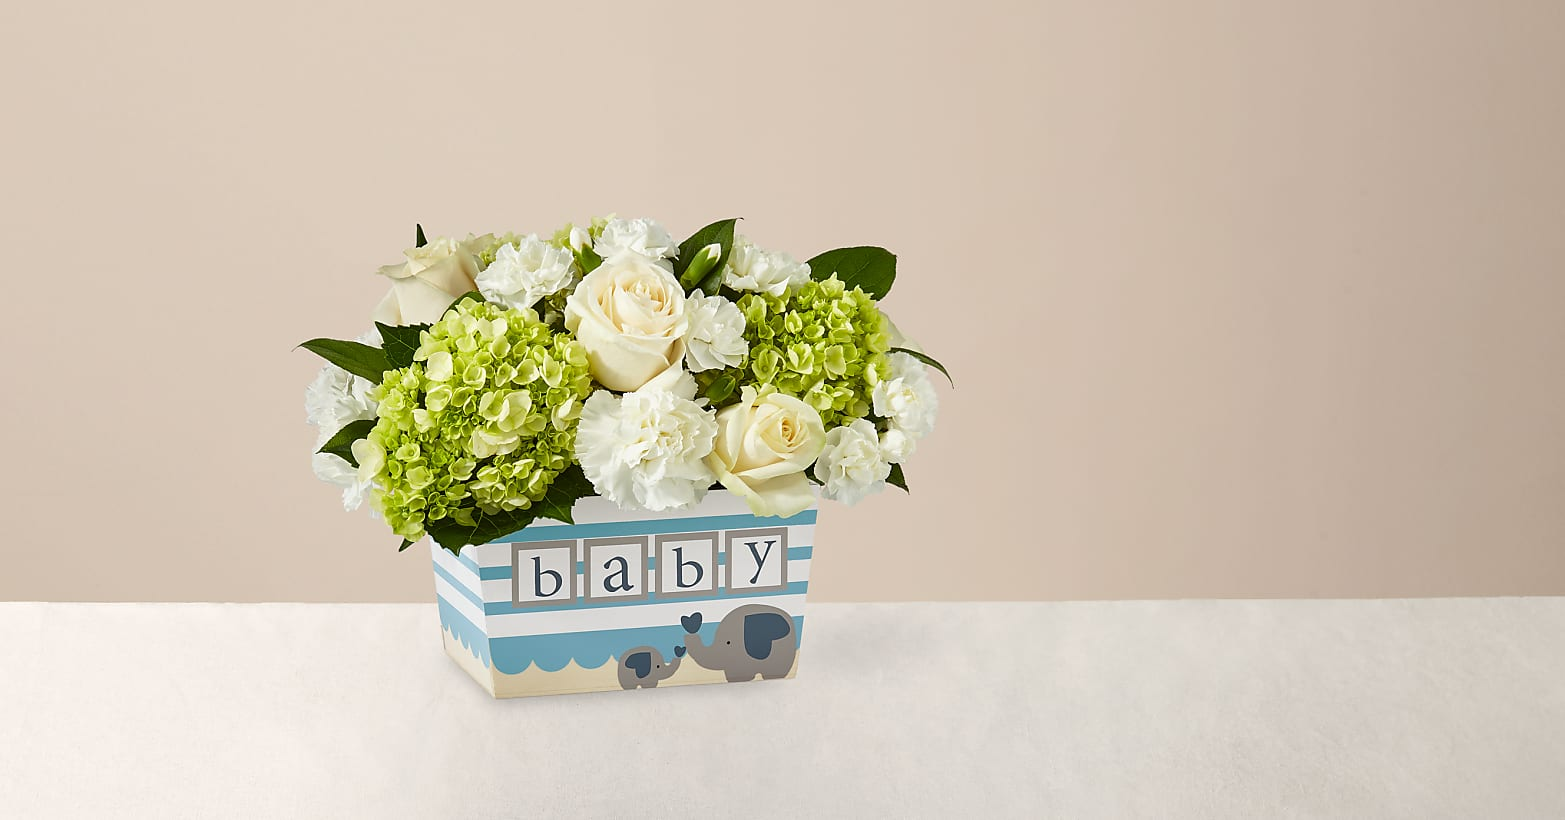 Darling Baby Boy Bouquet - Image 1 Of 3